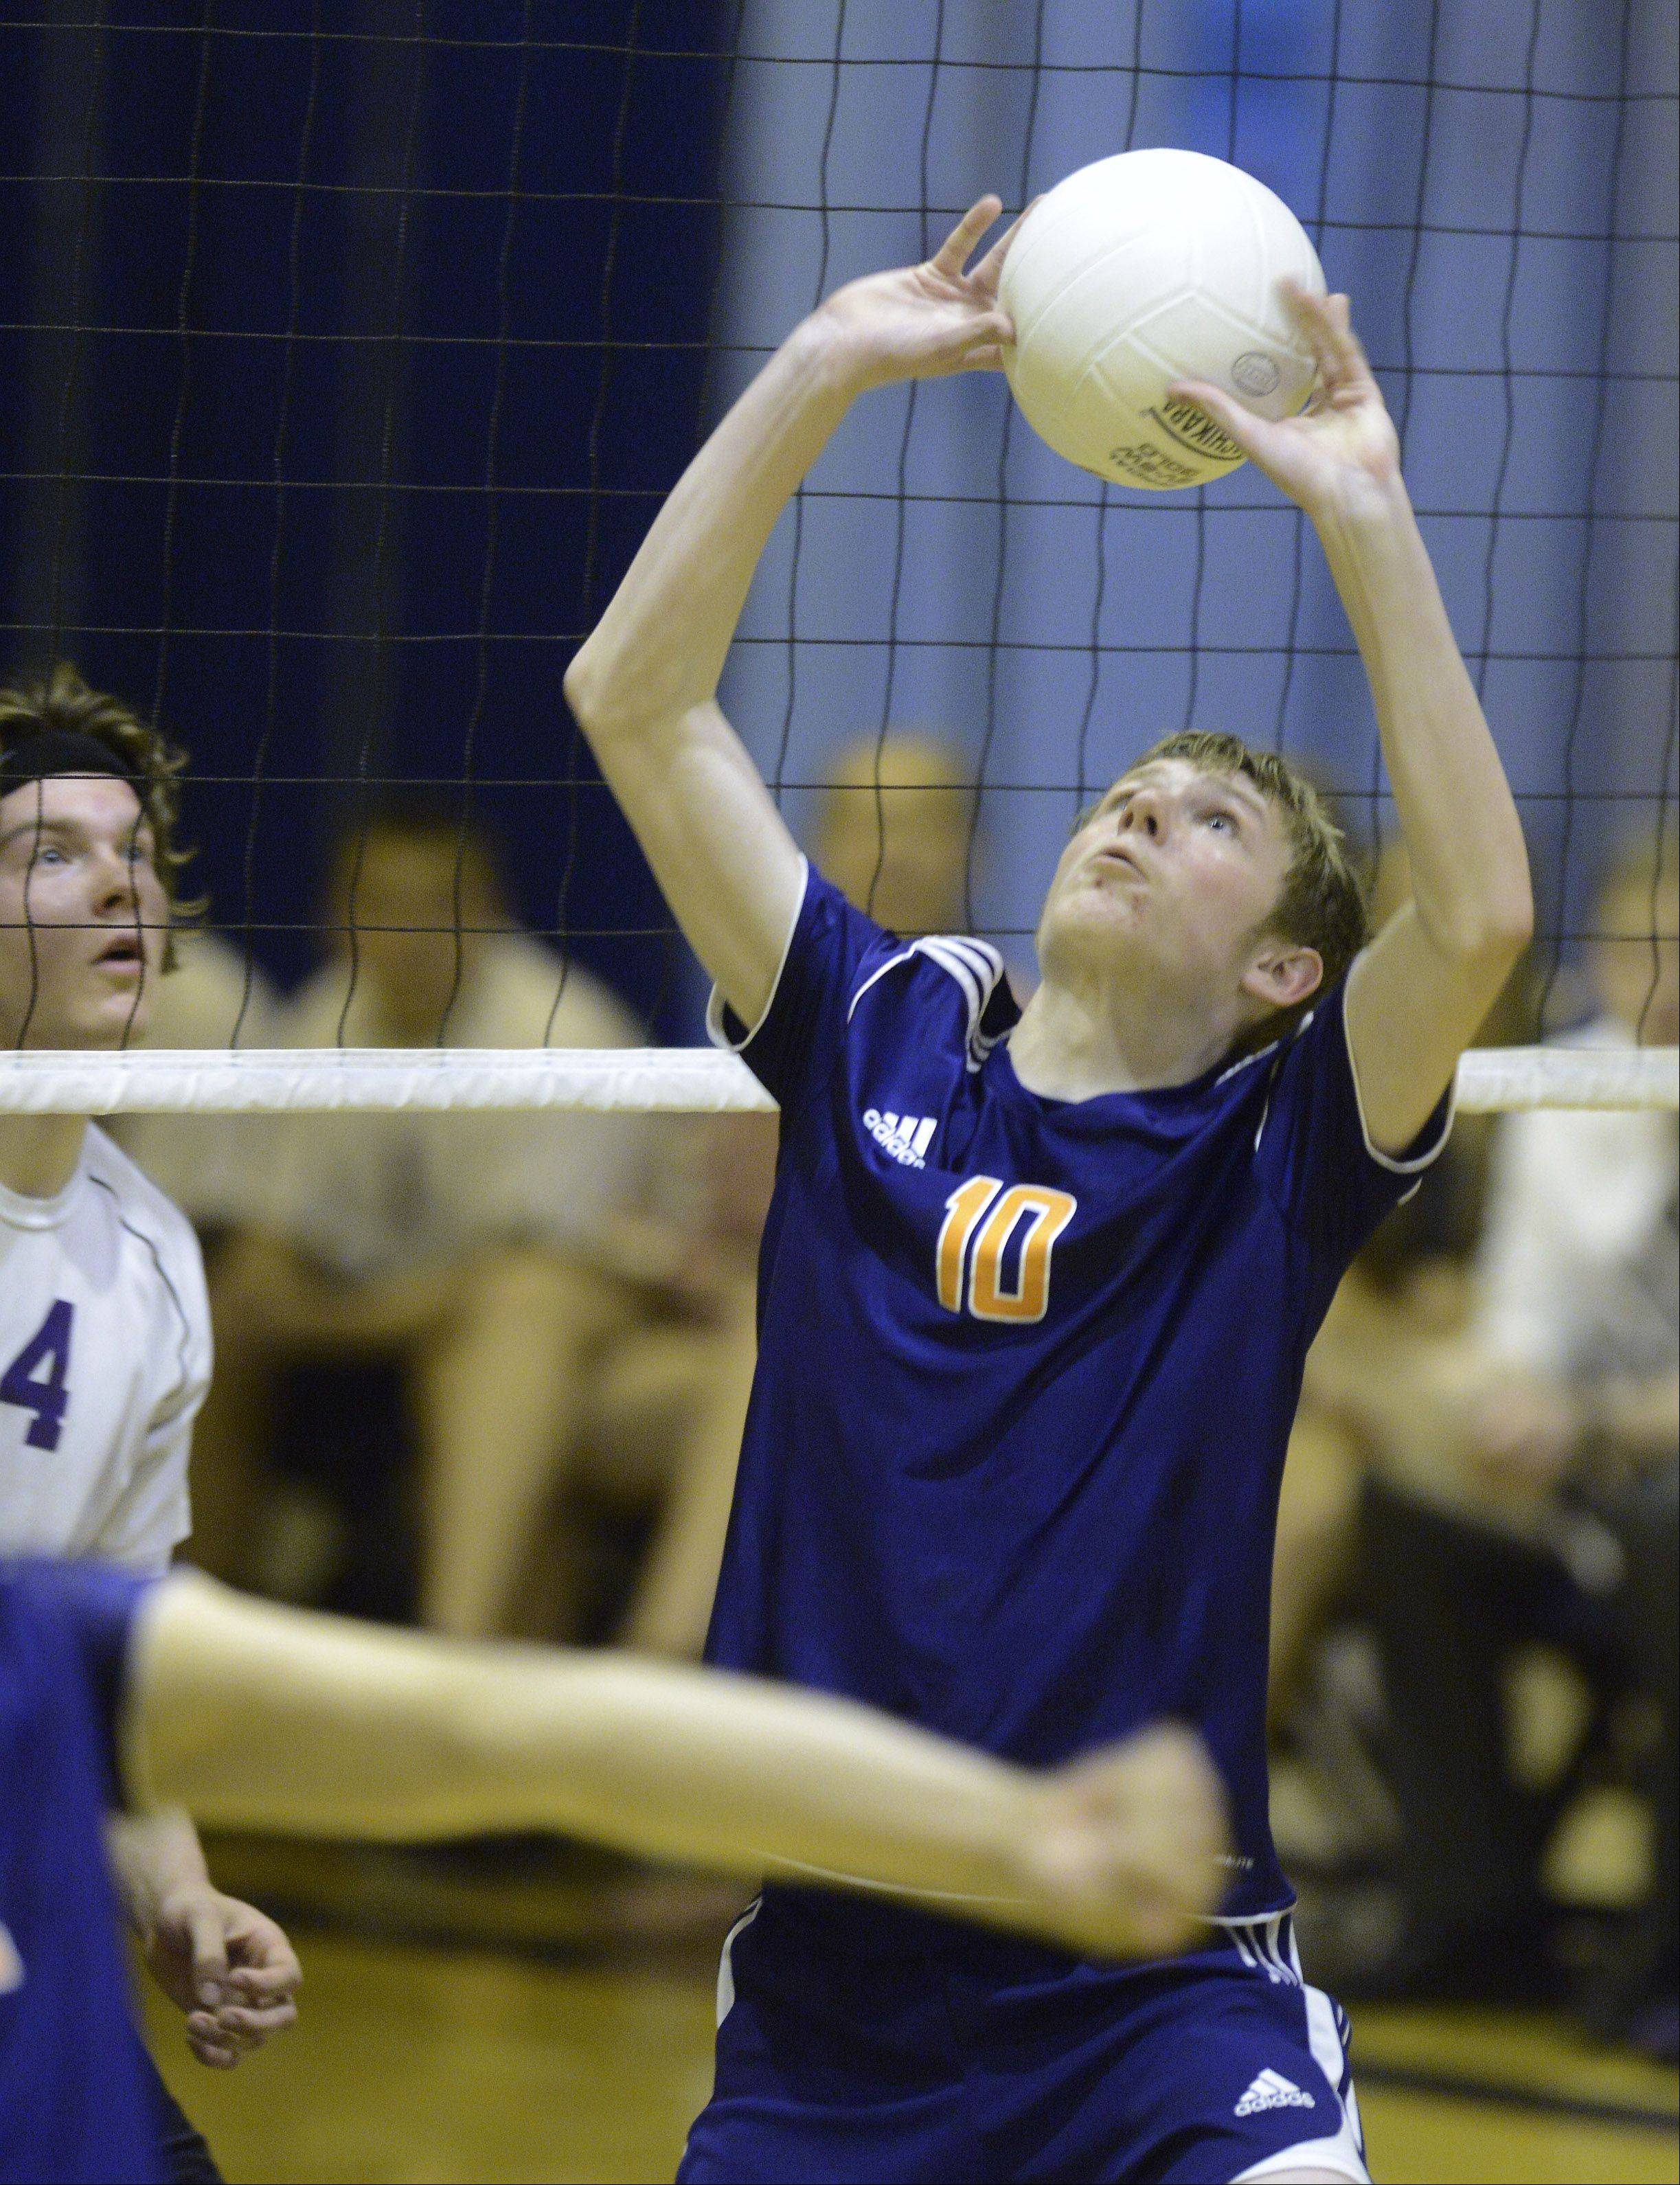 Buffalo Grove's Kevin Shanahan sets the ball during Tuesday's match against Rolling Meadows.